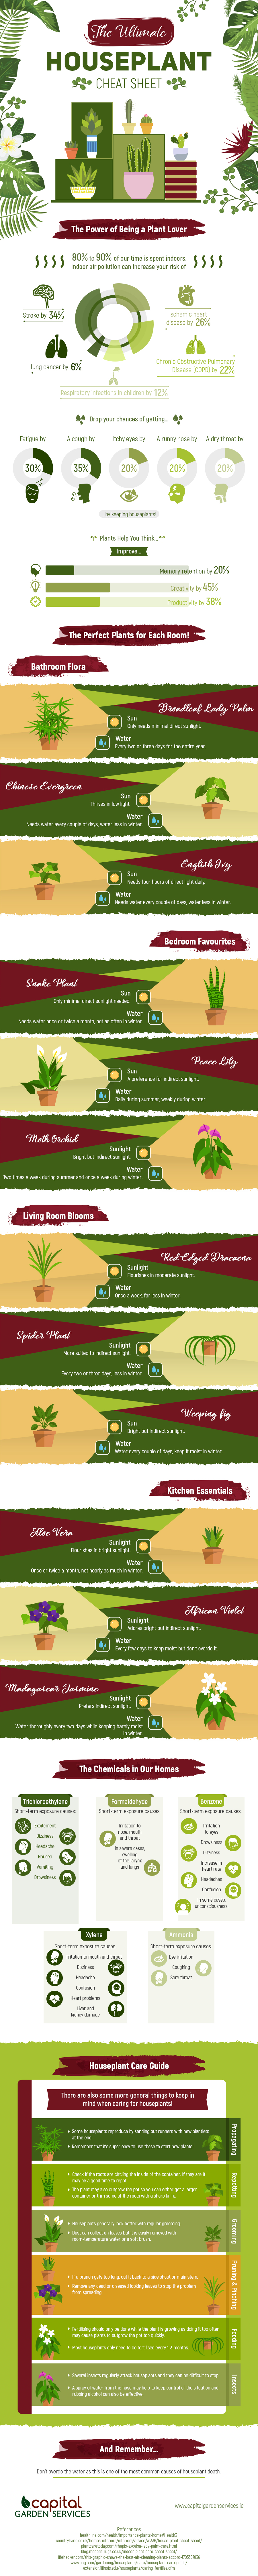 The-Ultimate-Houseplant-Cheat-Sheet-Infographic